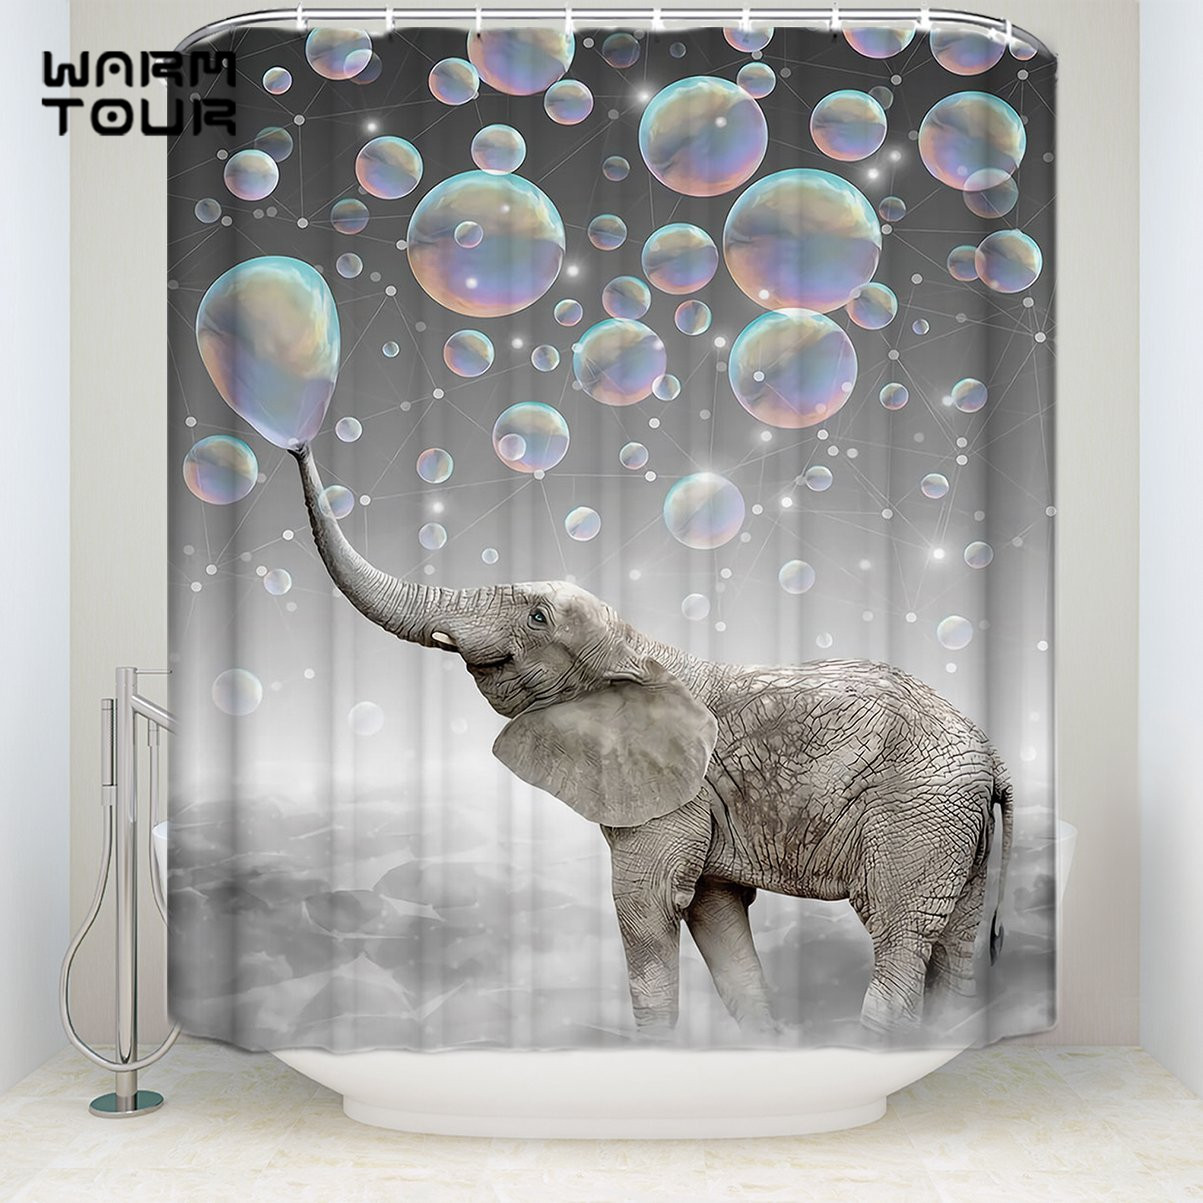 Ball Elephant Waterproof Bathroom Polyester Shower Curtain Liner Water Resistant